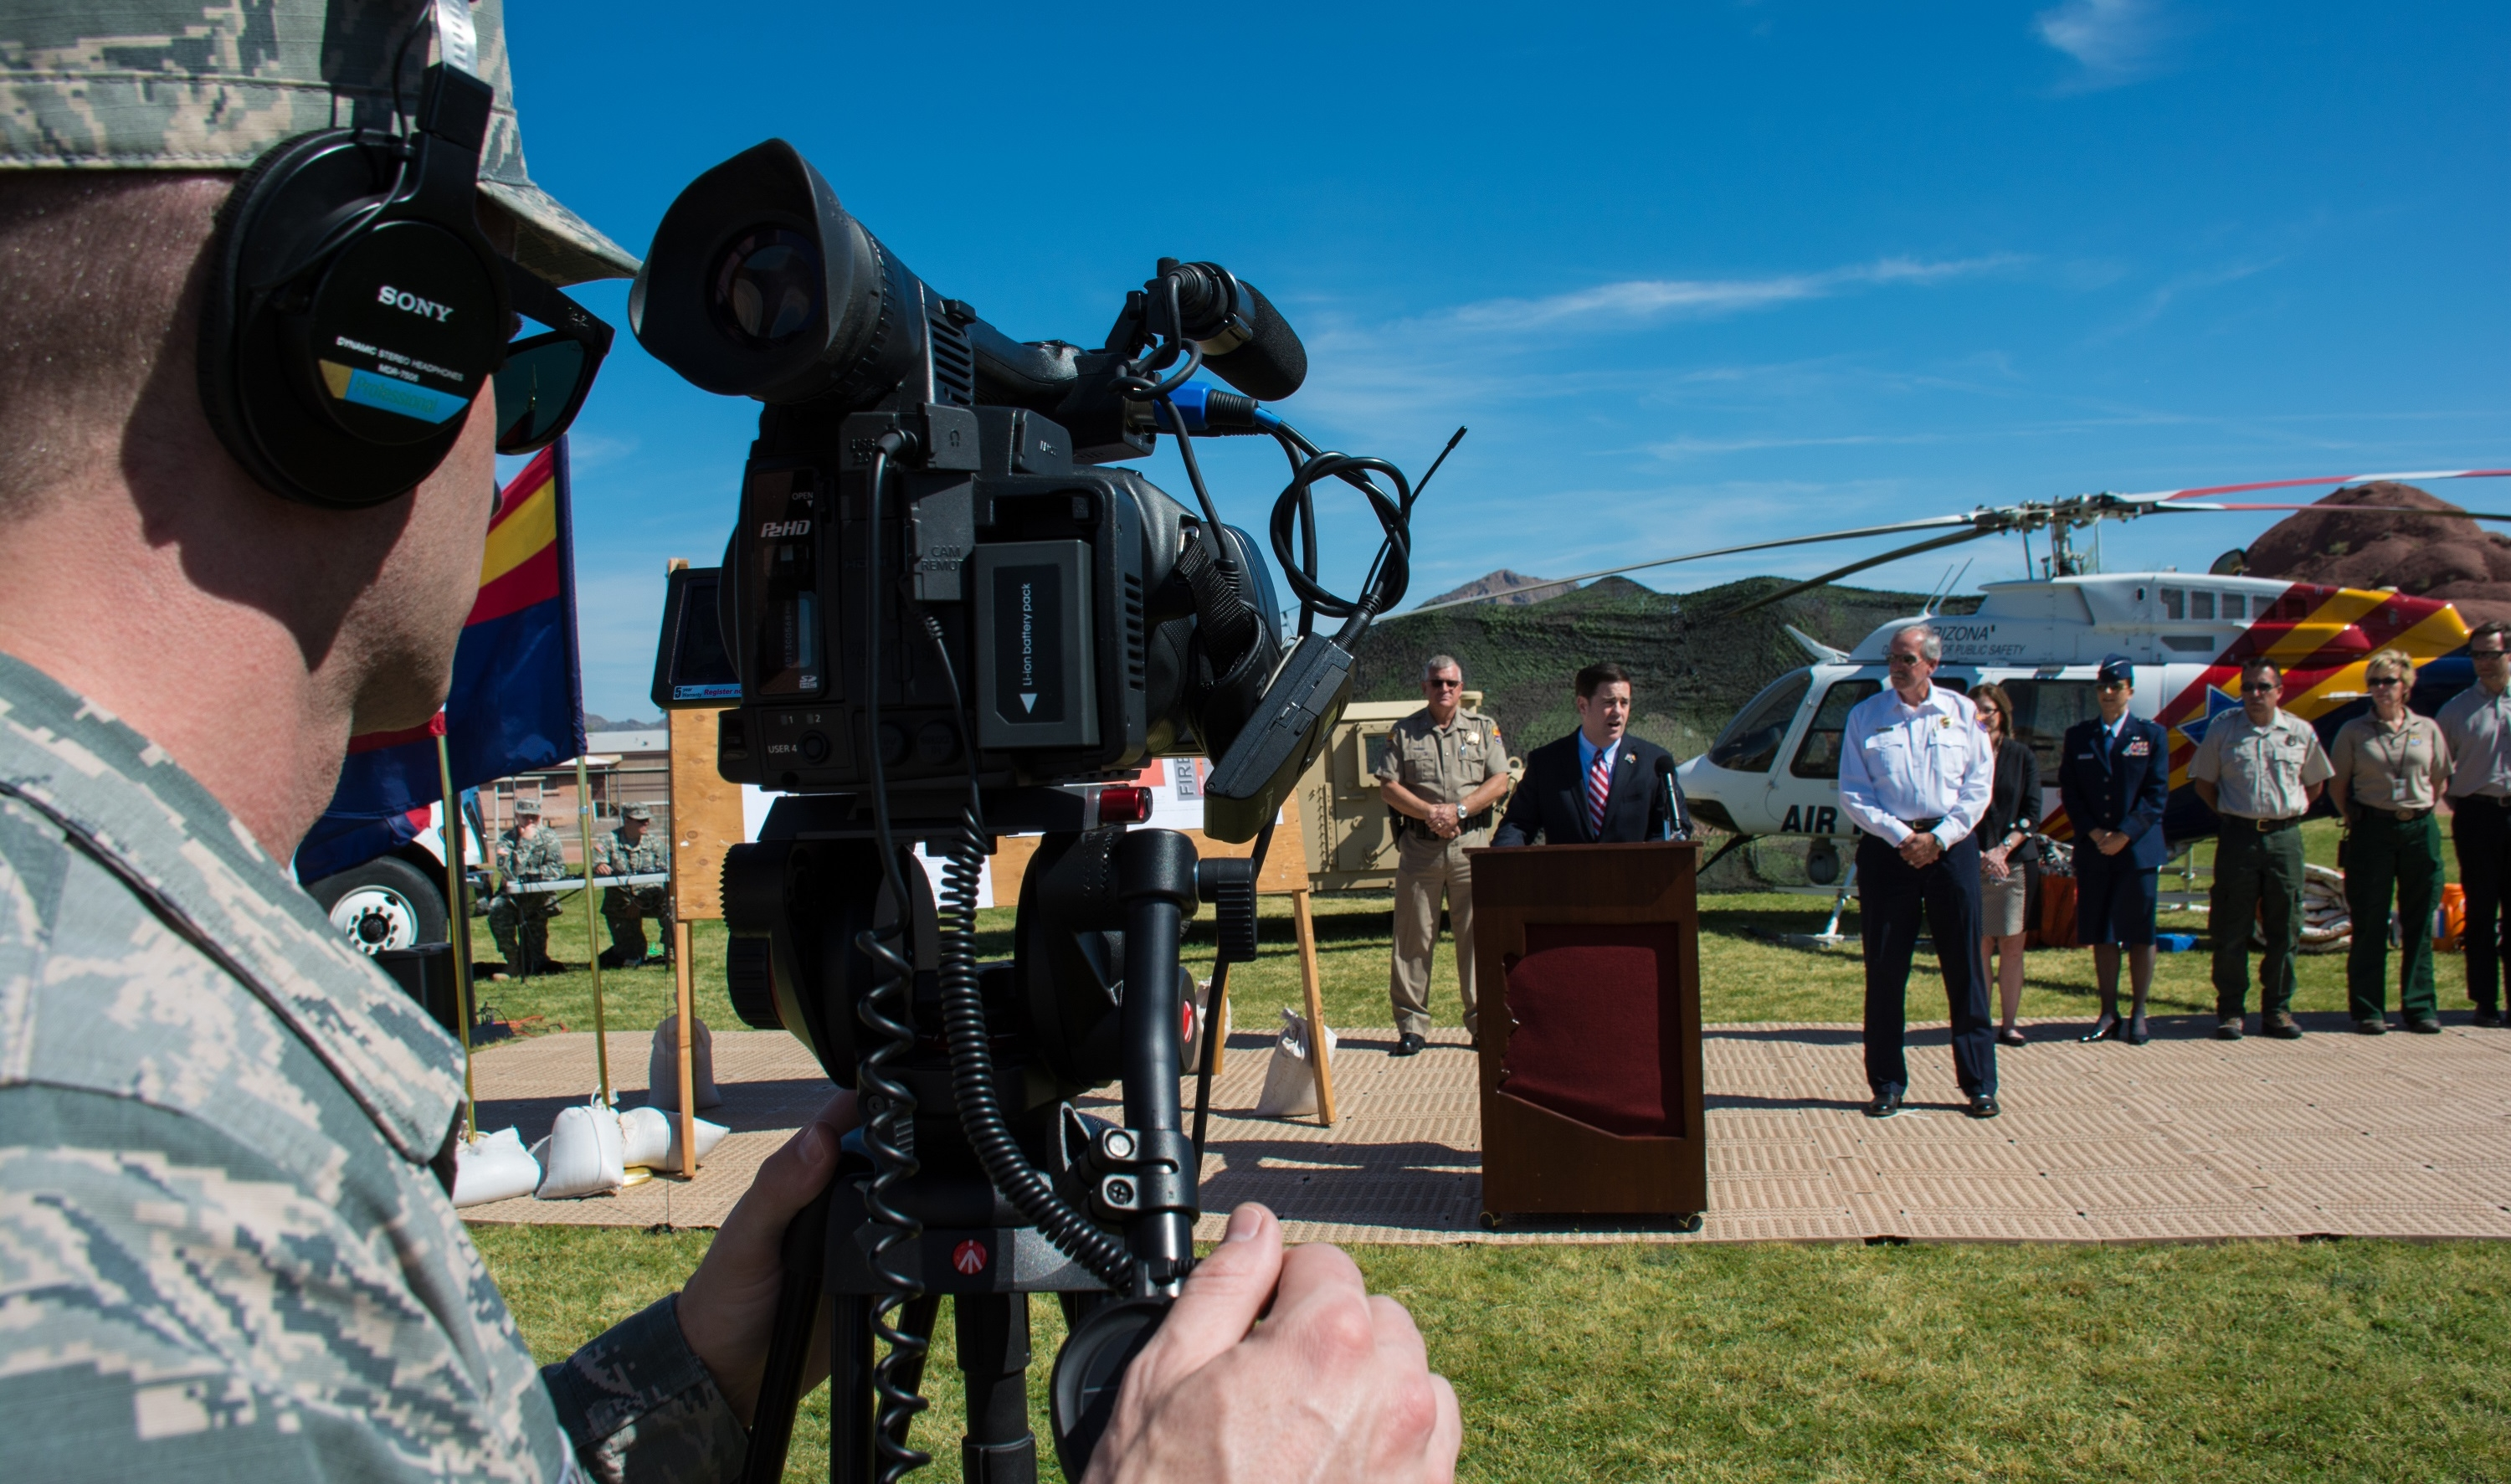 Airman shoots video of governor doug ducey